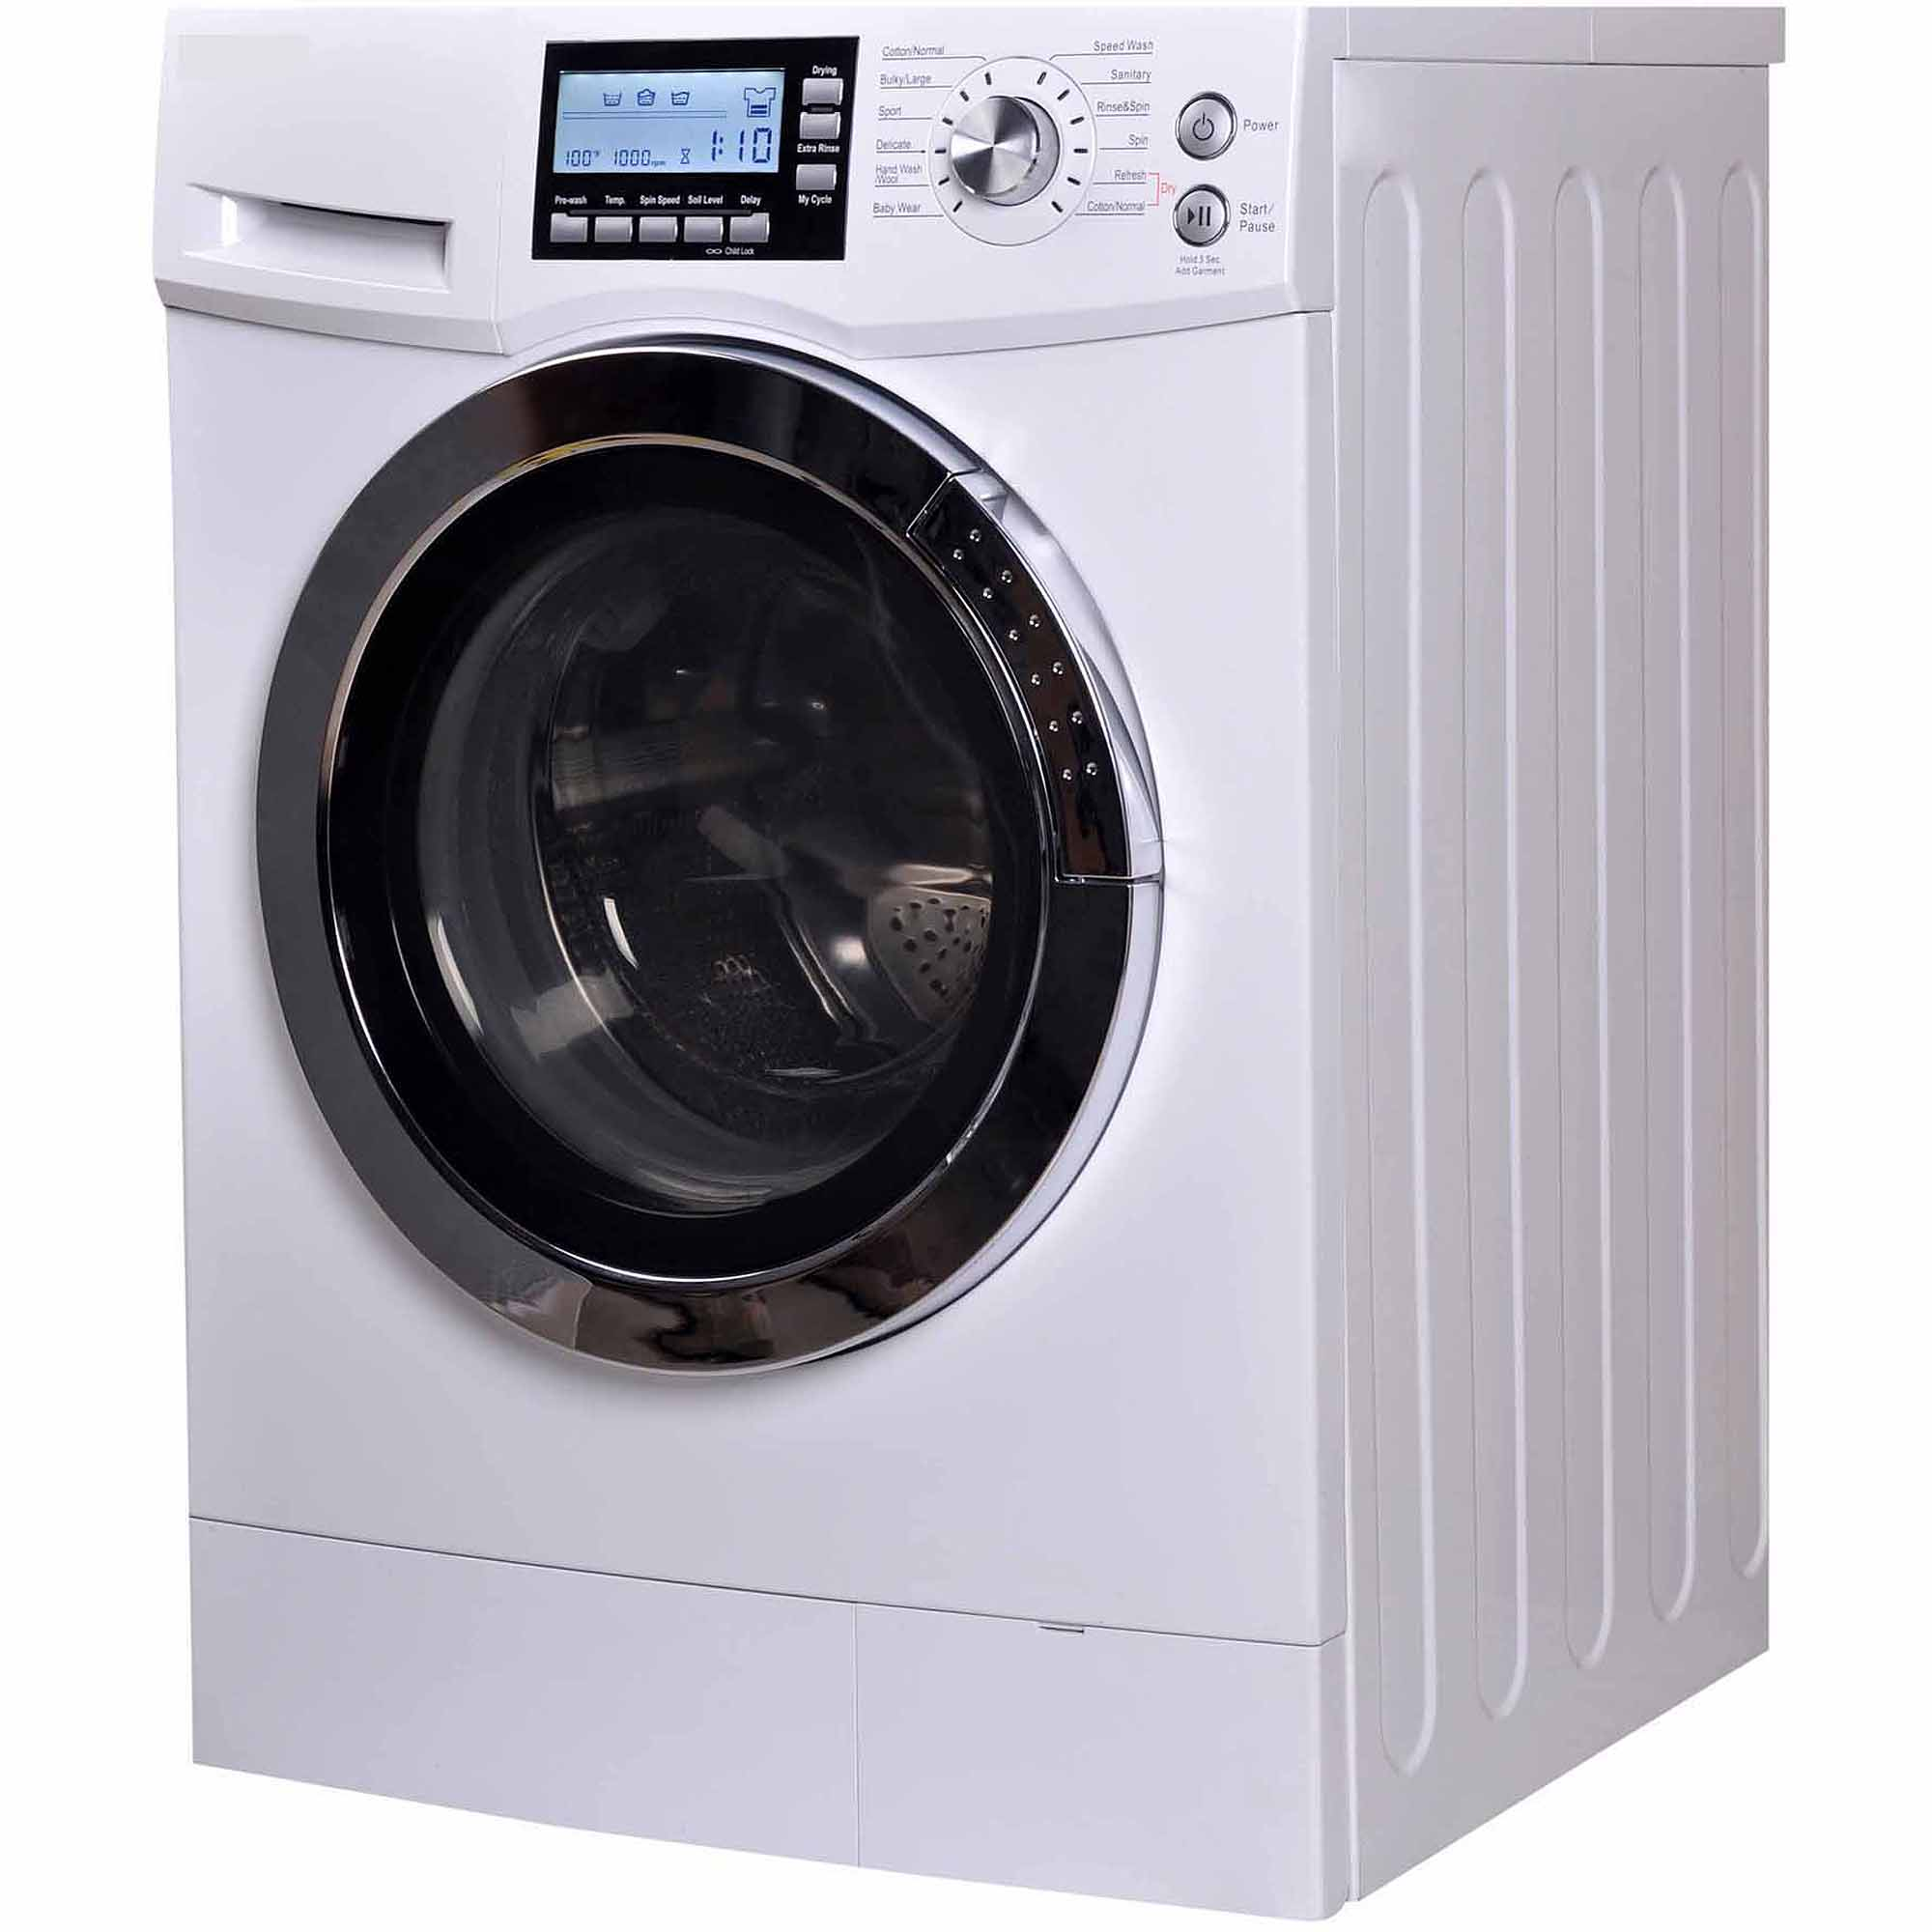 Washer And Dryer In One Part - 39: RCA 2.0 Cu Ft Front Loading Combo, White - Walmart.com